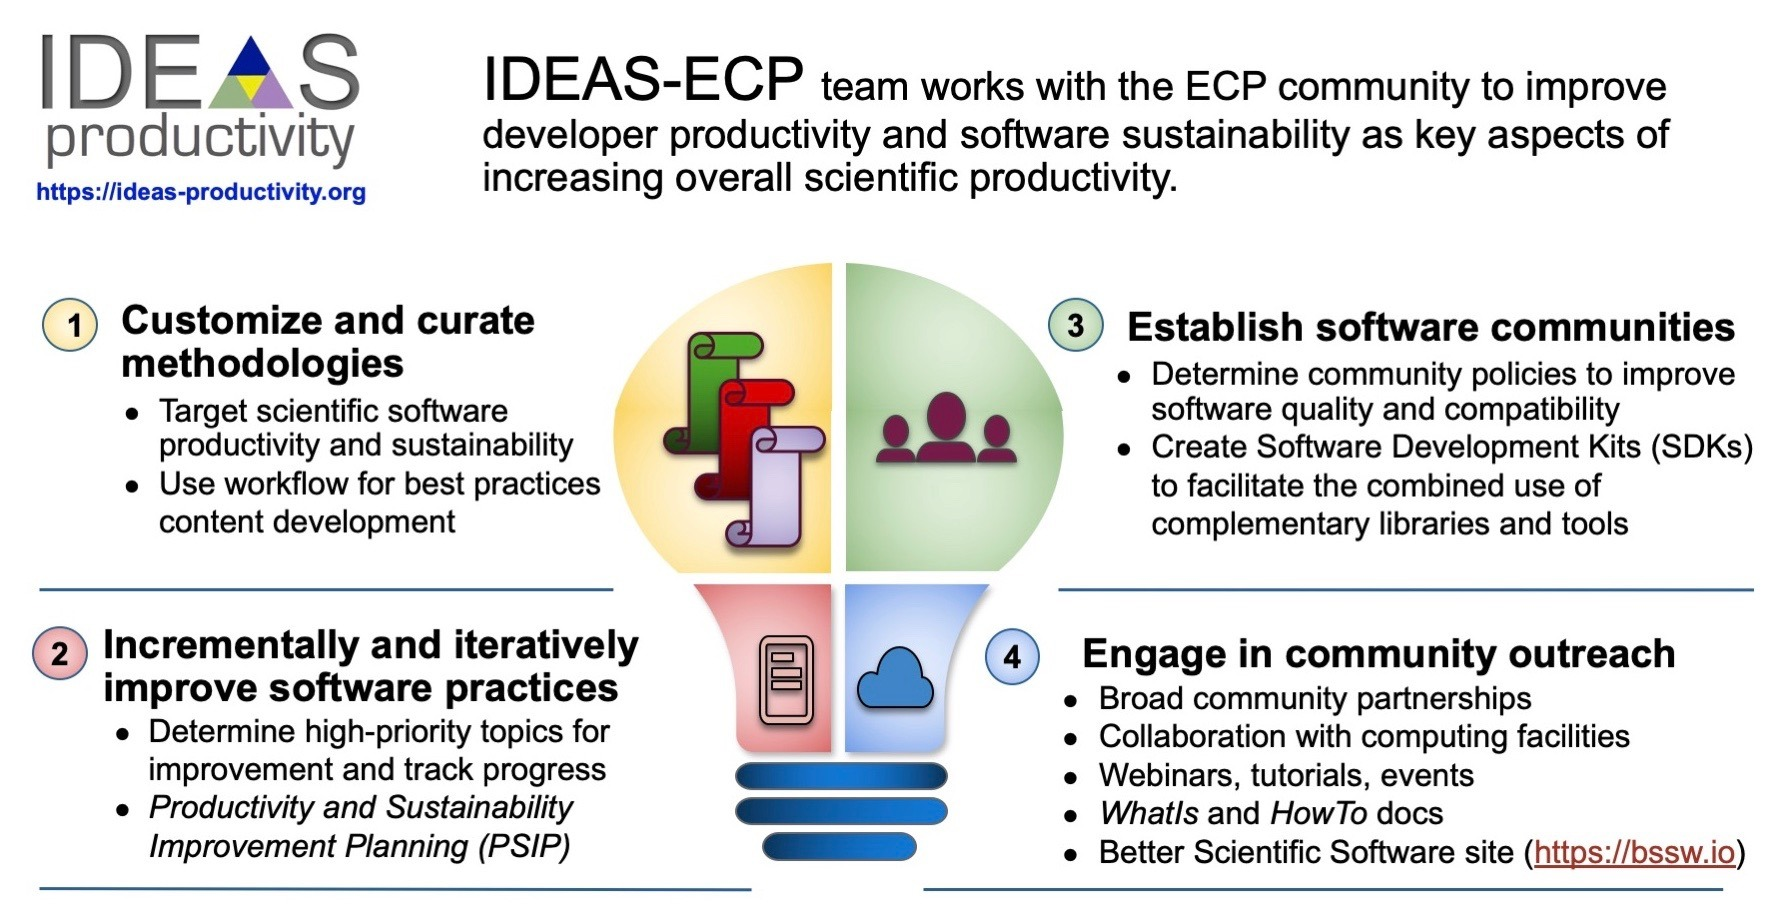 Overview of IDEAS-ECP